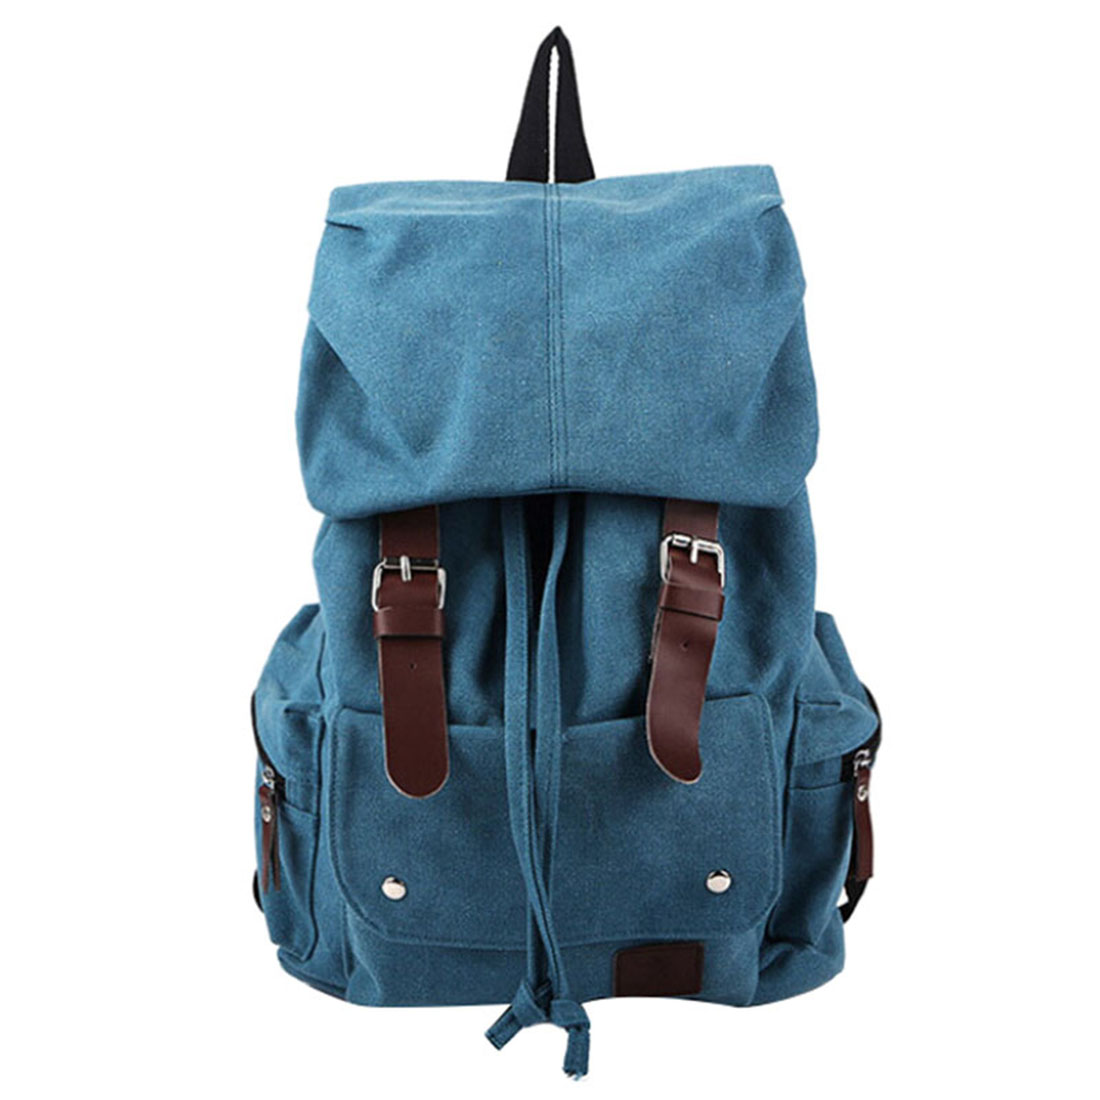 Fashion Men's Backpack Vintage Canvas Shoulder Bag Backpack School Bag Travel Bag